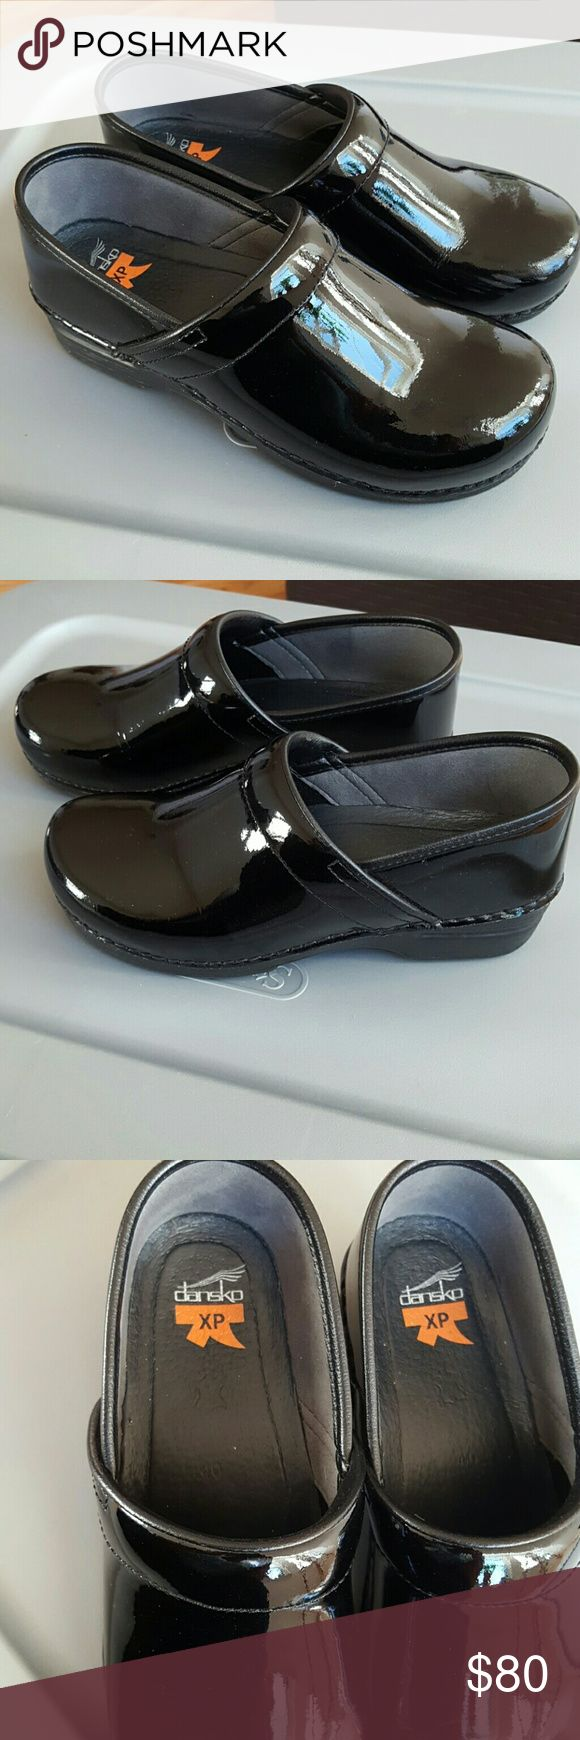 Dansko Profesional XP Clogs I originally purchased these Dansko XP Clogs from Posh Mark but size is to small for me.  I never wore them.   They're in excellent like new condition.    Size 40 or US size 10.  Color. Shiny black patent leather with a black clog sole.   Frome a smoke and pet free home.  Please message me if you need more pictures or information.   Thank you: -) Dansko Shoes Mules & Clogs